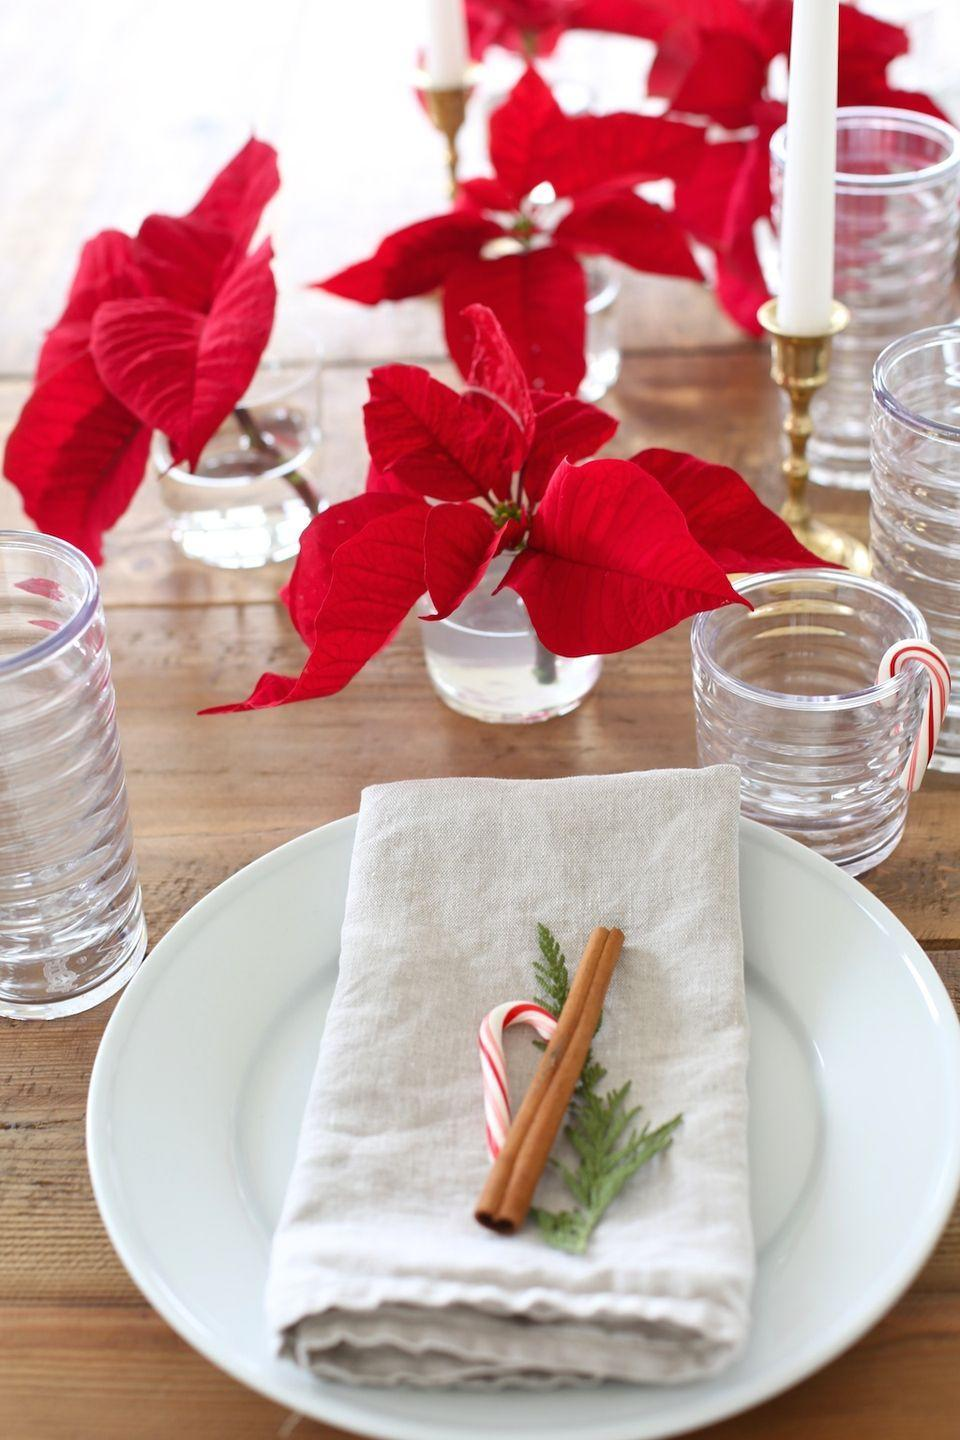 "<p>Poinsettias, cinnamon, and candy canes will literally never go out of style.</p><p>See more at <a href=""http://julieblanner.com/poinsettia-centerpiece/"" rel=""nofollow noopener"" target=""_blank"" data-ylk=""slk:Julie Blanner"" class=""link rapid-noclick-resp"">Julie Blanner</a>. </p>"